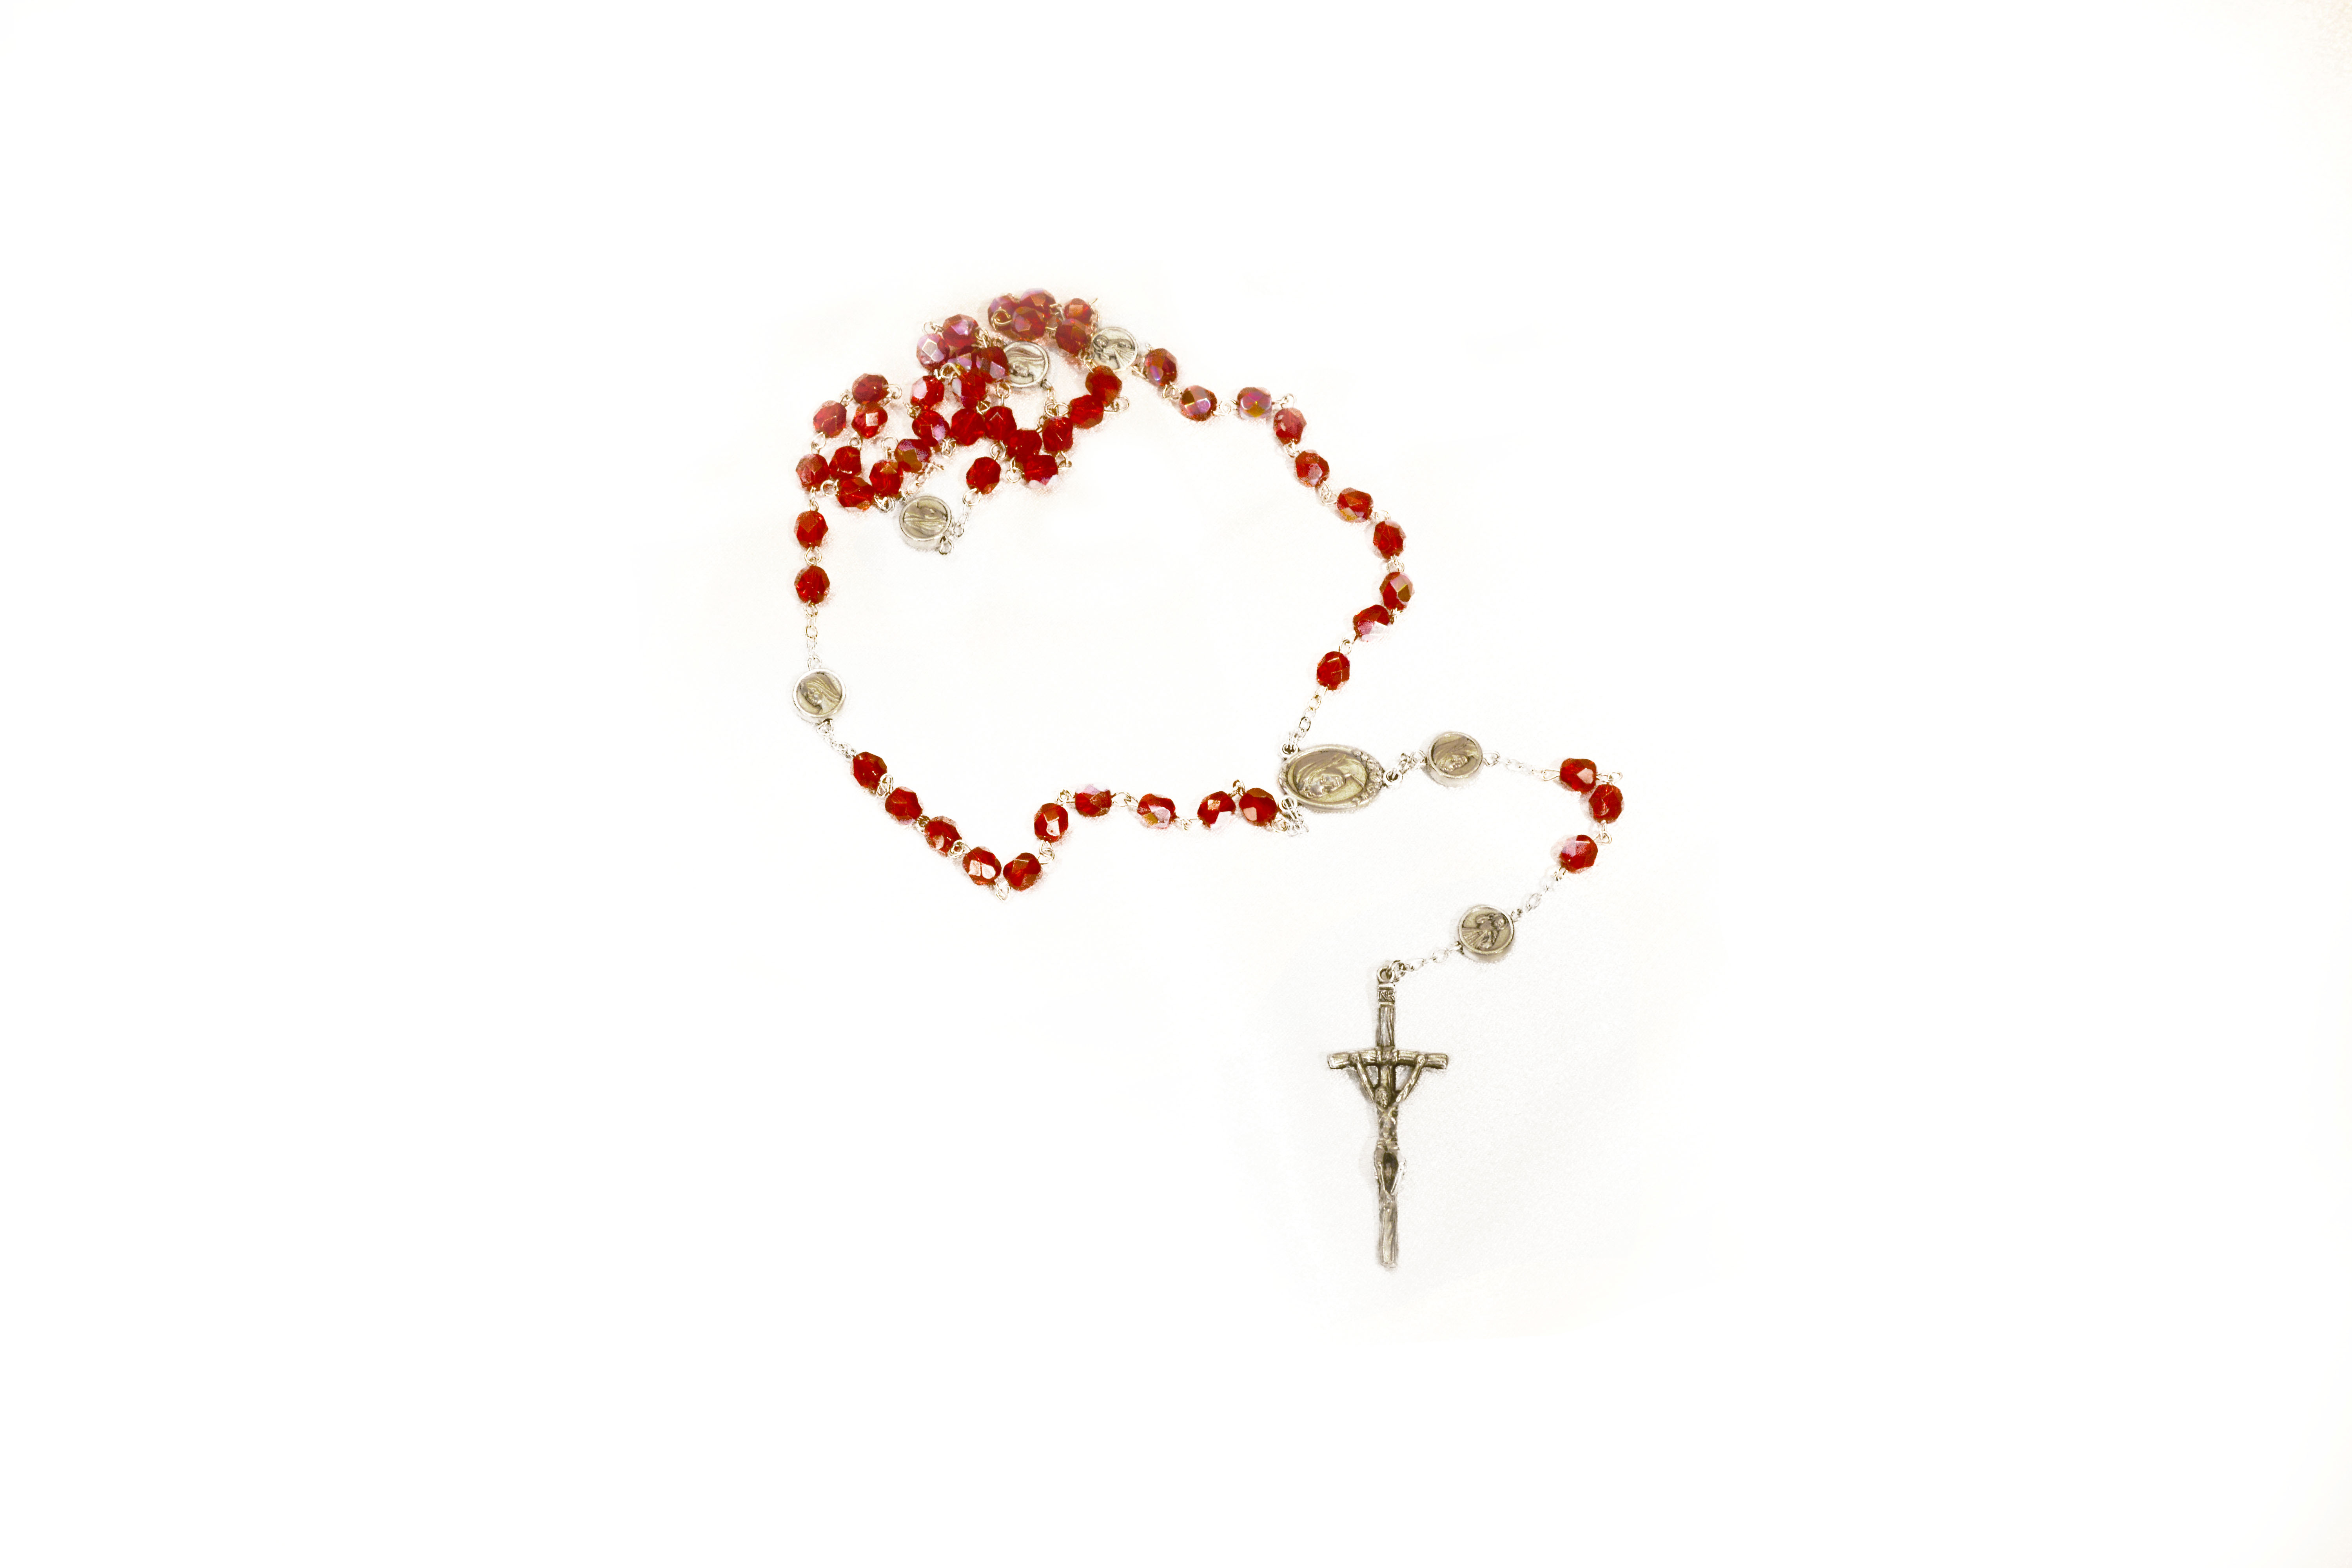 Chapelet rouge irisé / Iridescent Red Rosary